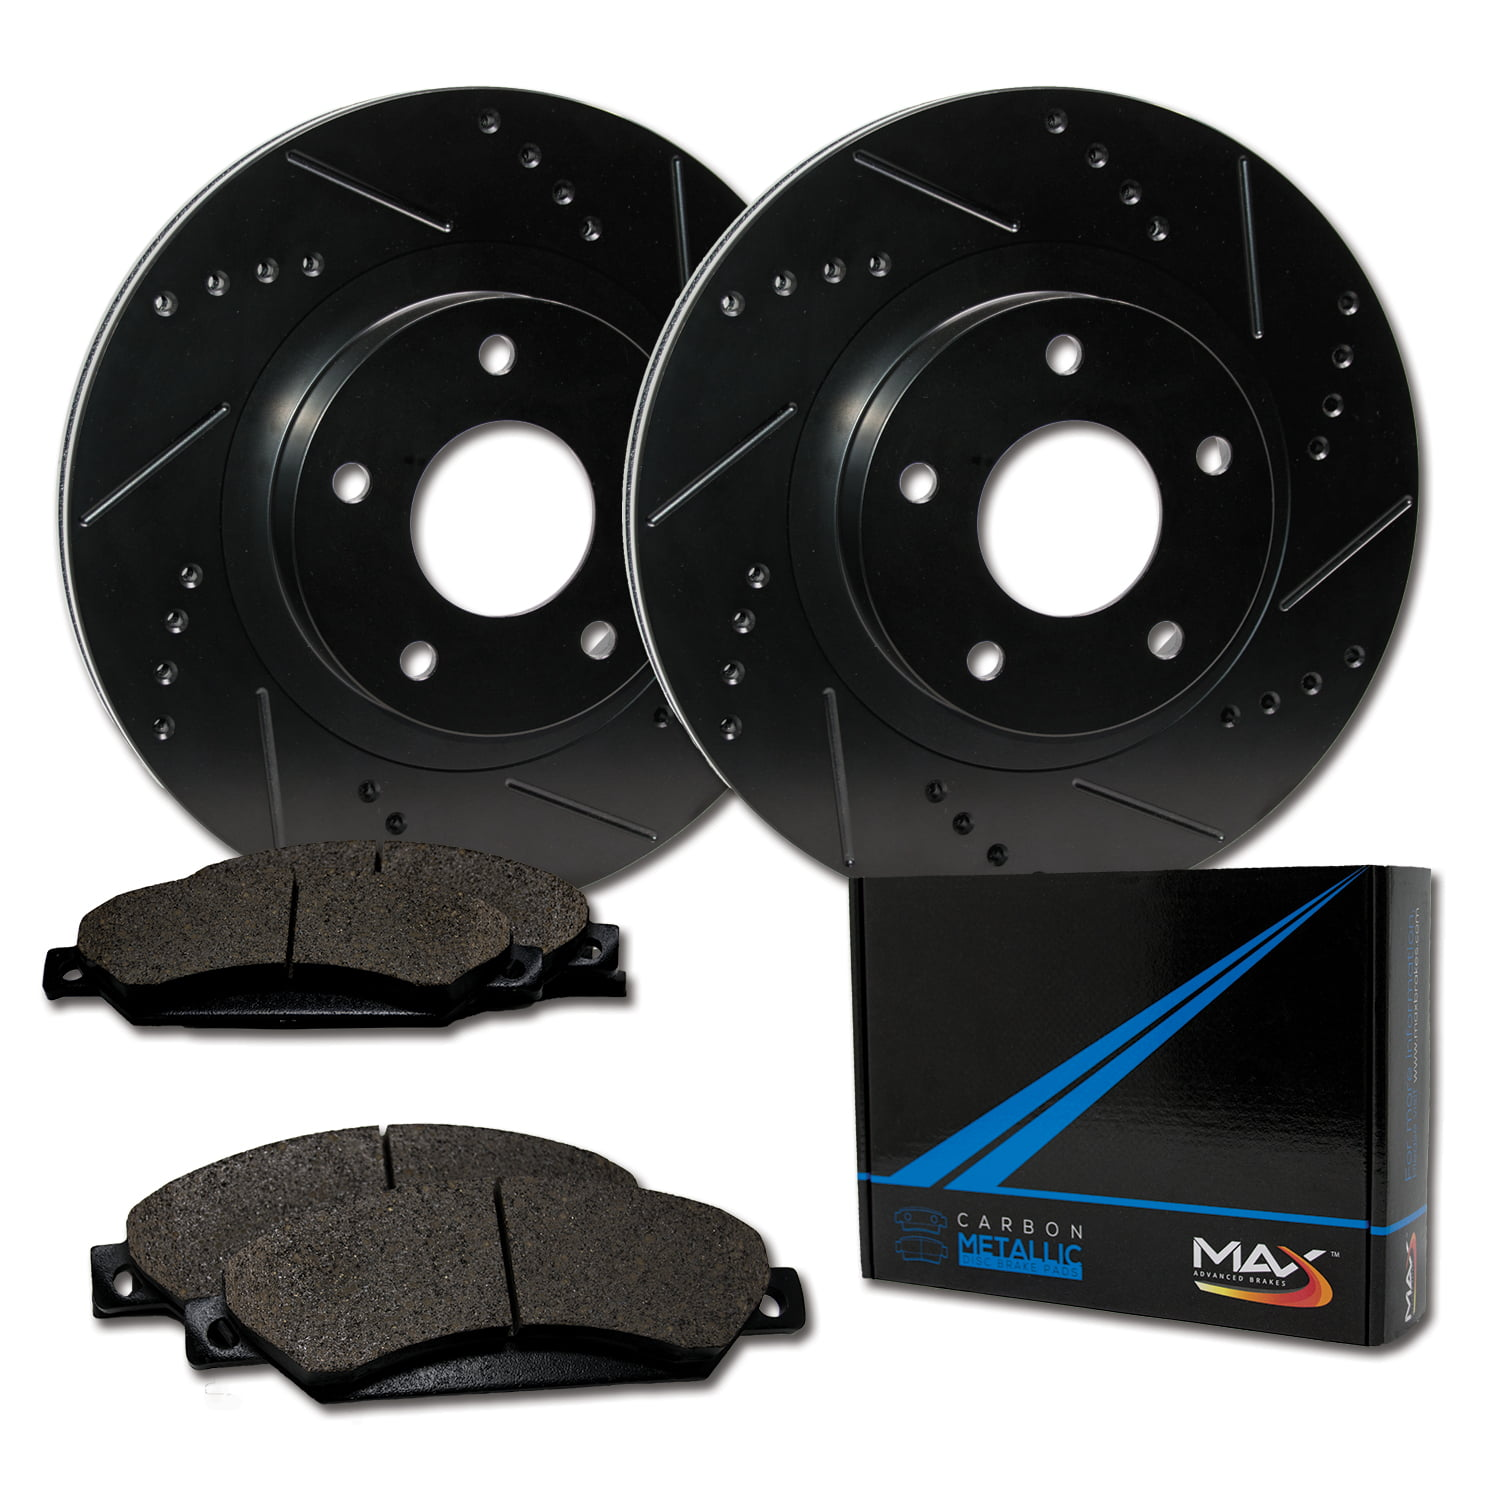 KM120732 Premium Slotted Drilled Rotors + Ceramic Pads Brakes Max Brakes Rear Supreme Brake Kit Fits: 2012 12 Ford Mustang Shelby GT500 /& 5.0L Models w//Perf